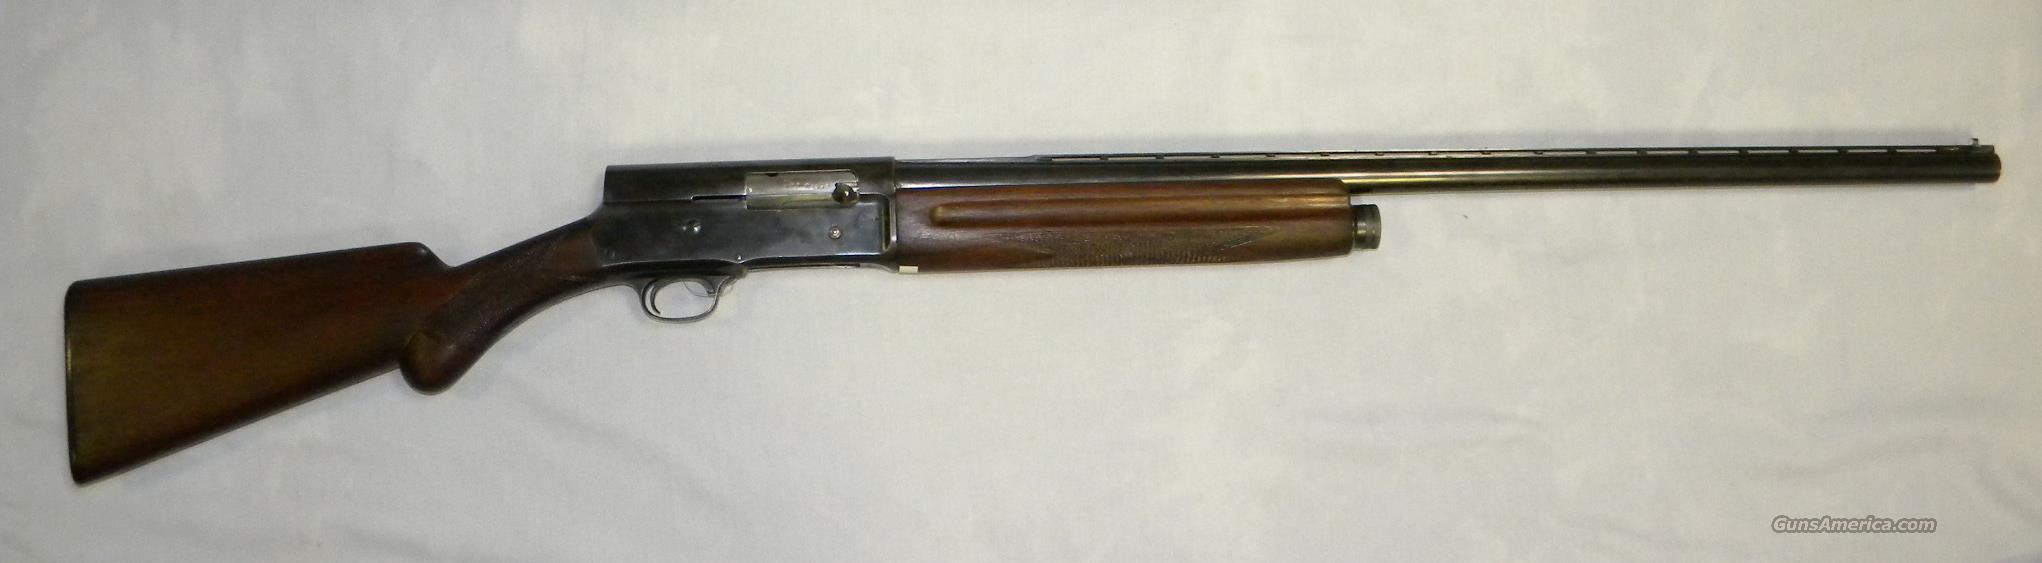 Browning A-5, 12 Ga Semi-Auto Shotgun   Guns > Shotguns > Browning Shotguns > Autoloaders > Hunting